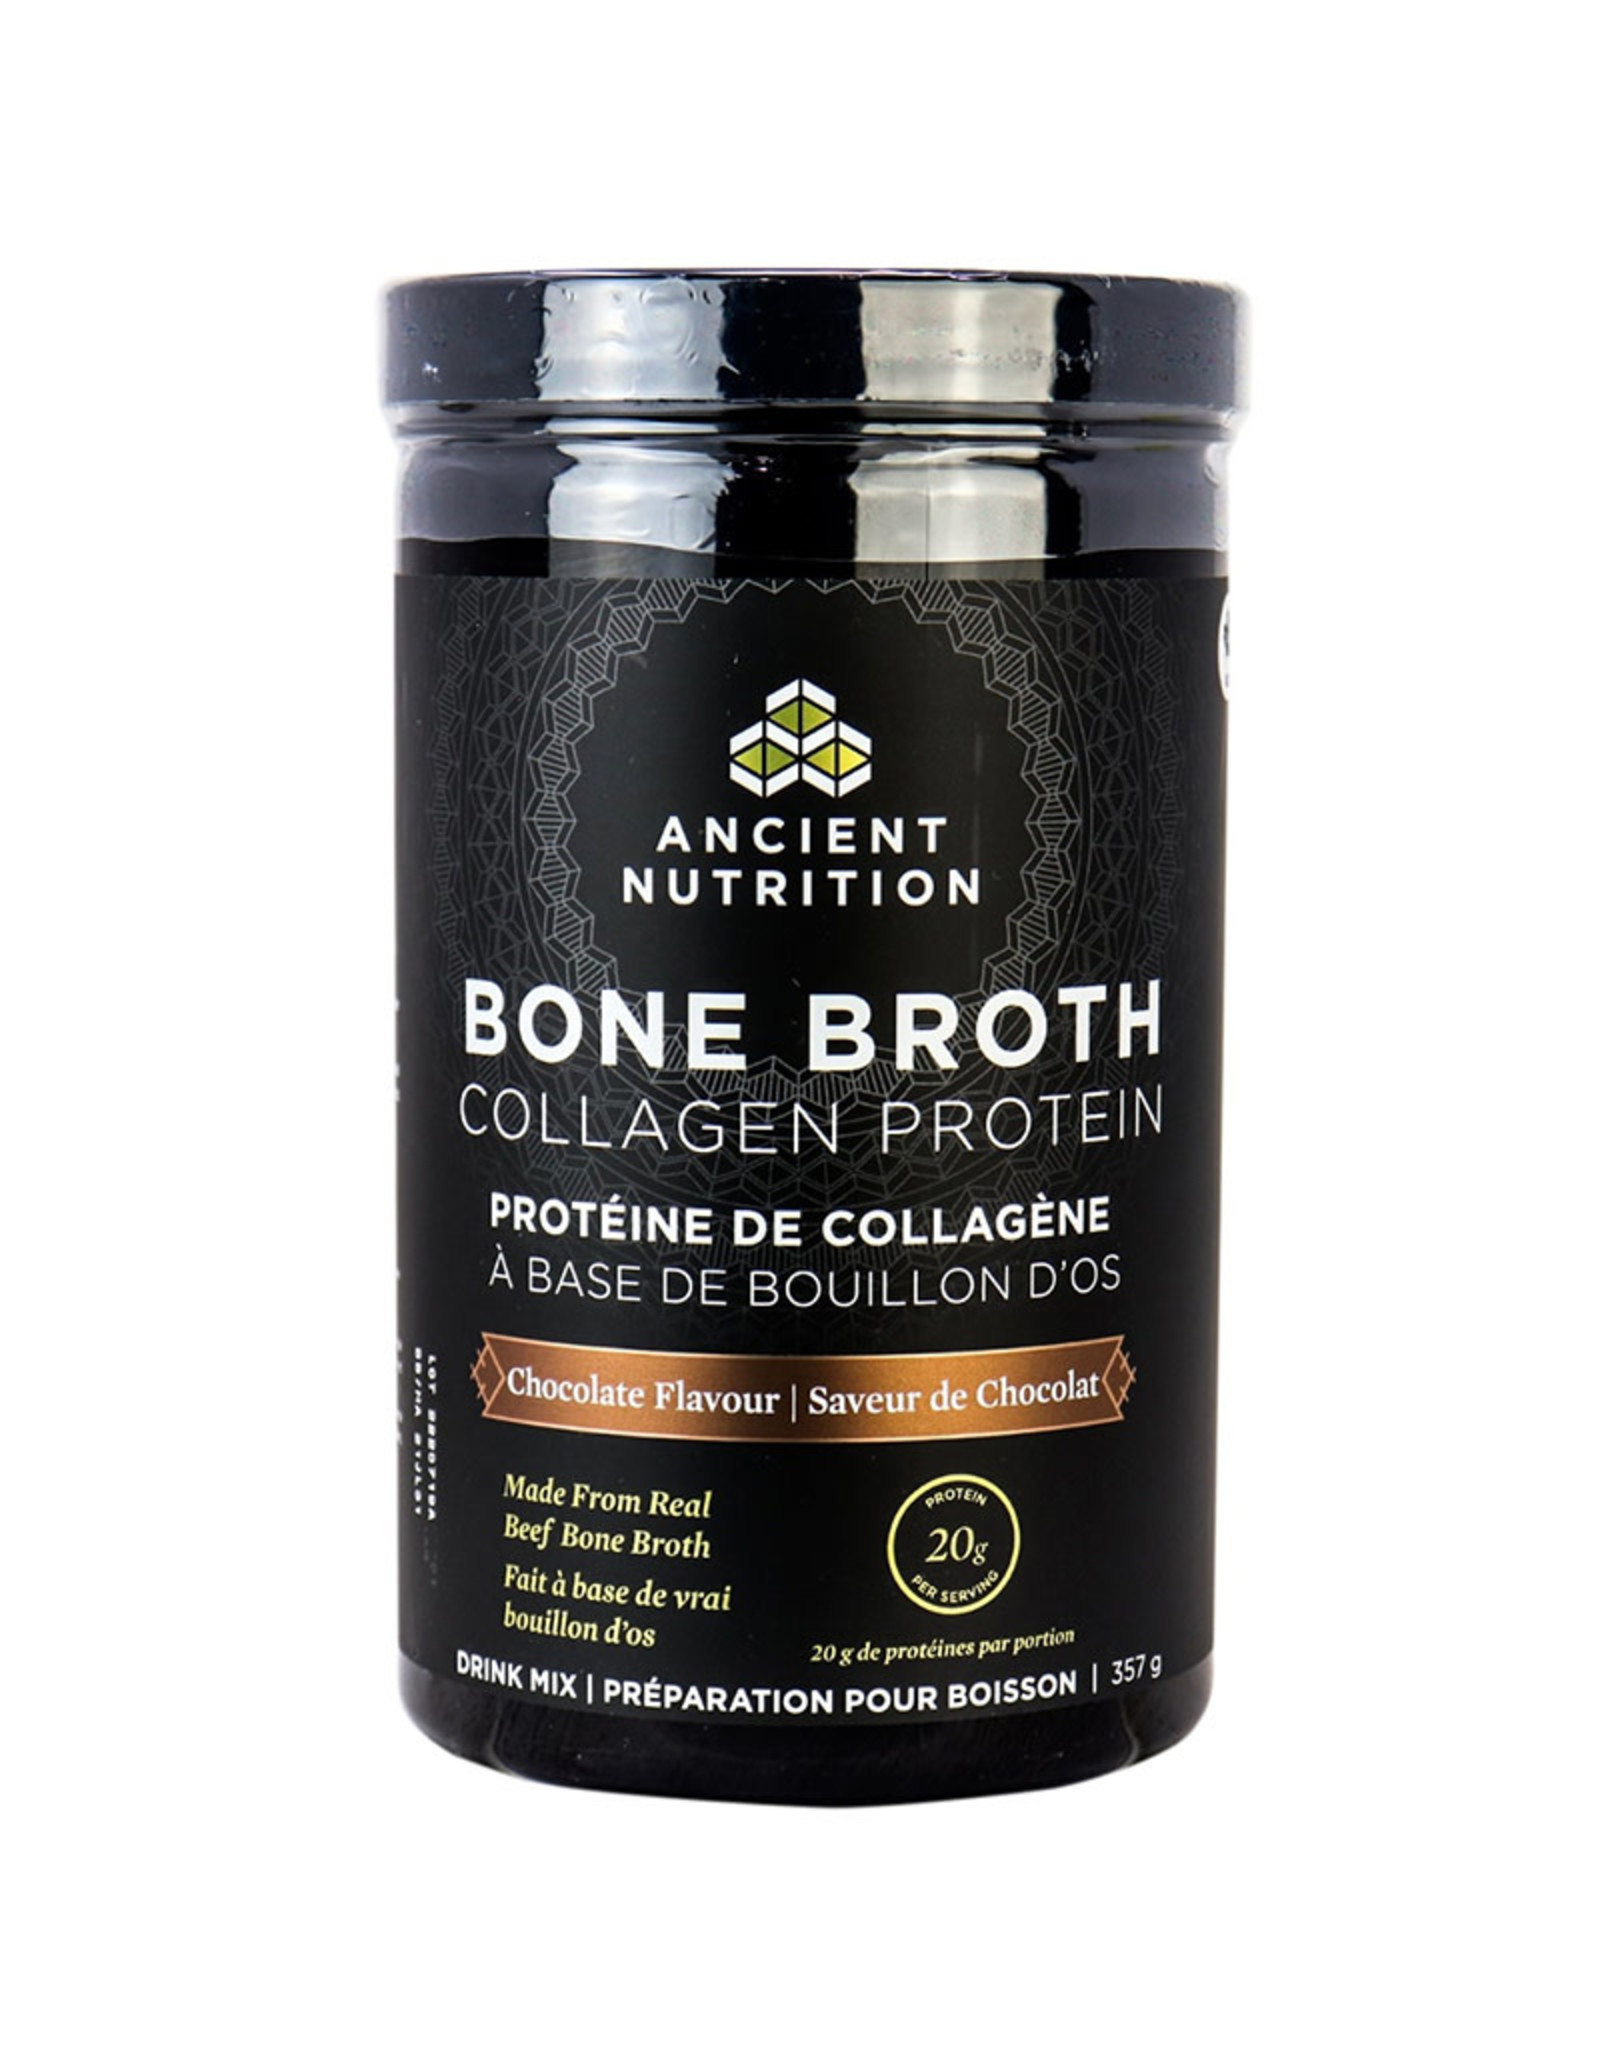 Ancient Nutrition Ancient Nutrition - Bone Broth Collagen Protein, Chocolate (357g)